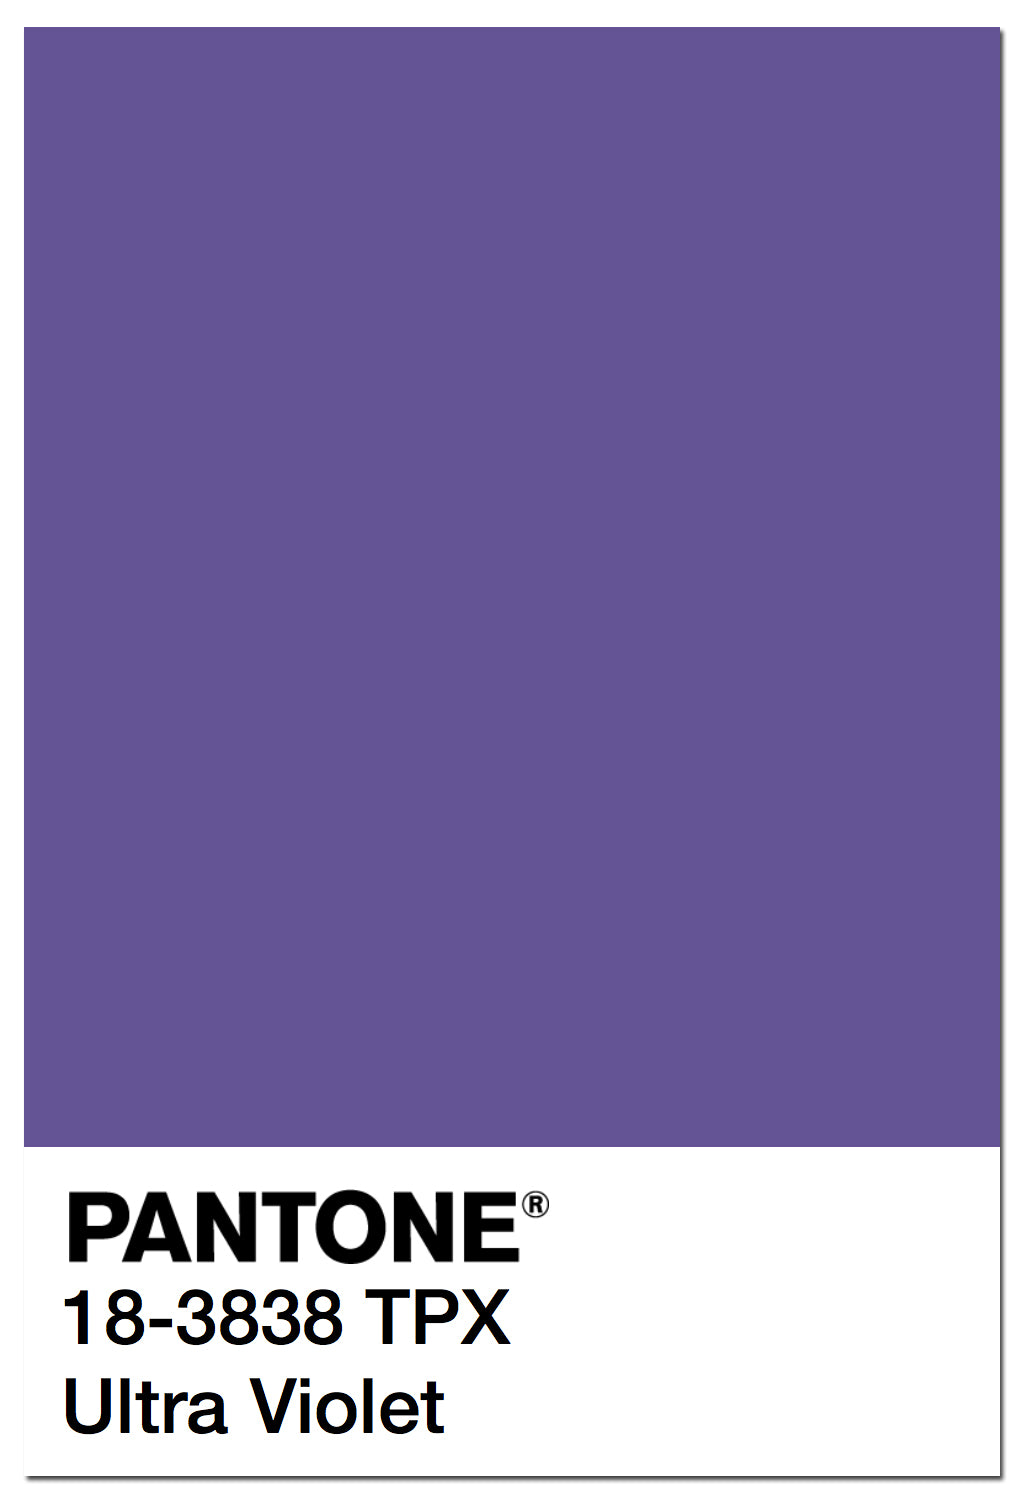 2018 pantone color of the year kess inhouse for Pantone color of 2018